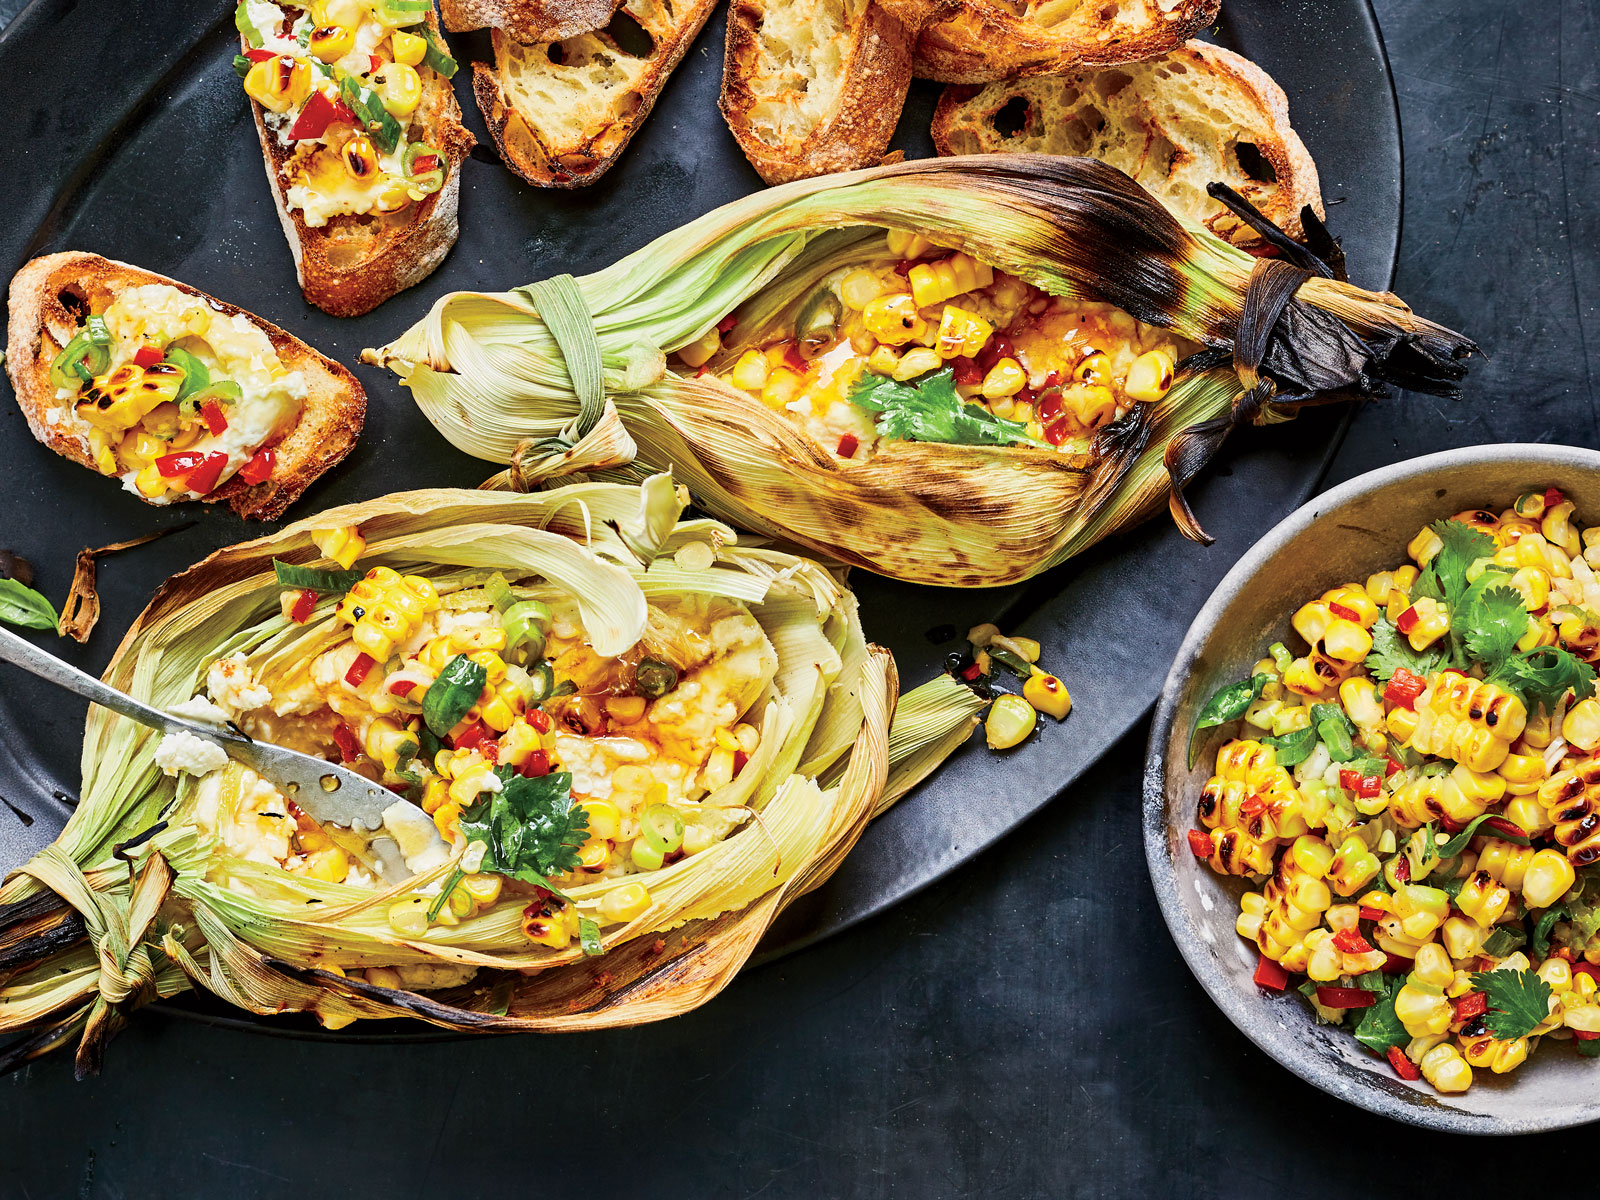 Corn Husk-Grilled Goat Cheese with Corn Relish and Honey